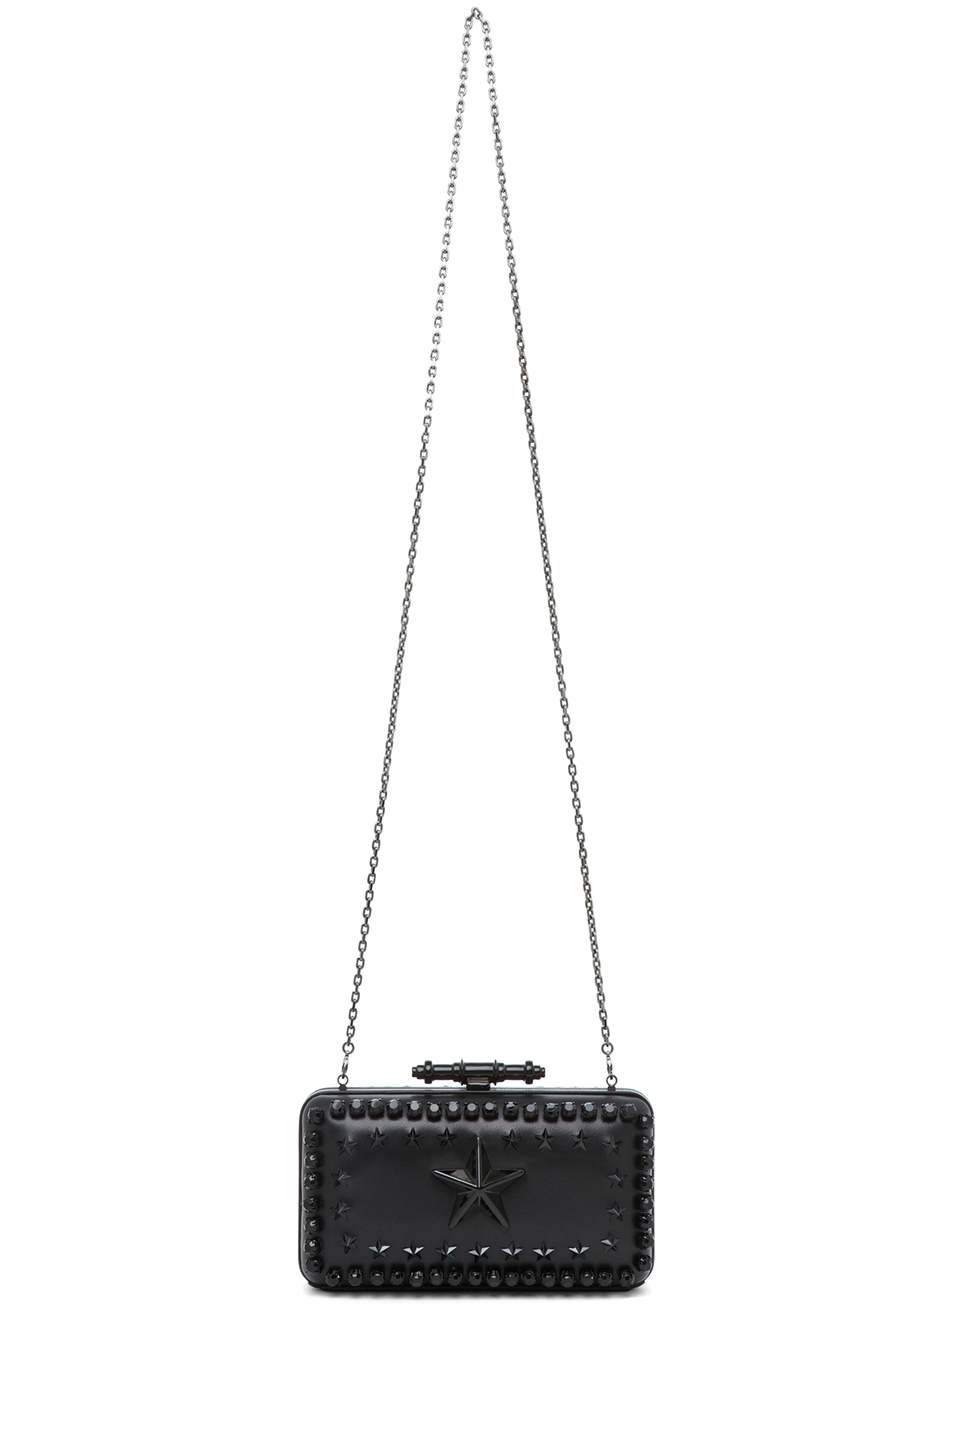 GIVENCHY | Obsedia Star-Studded Minaudiere in Black